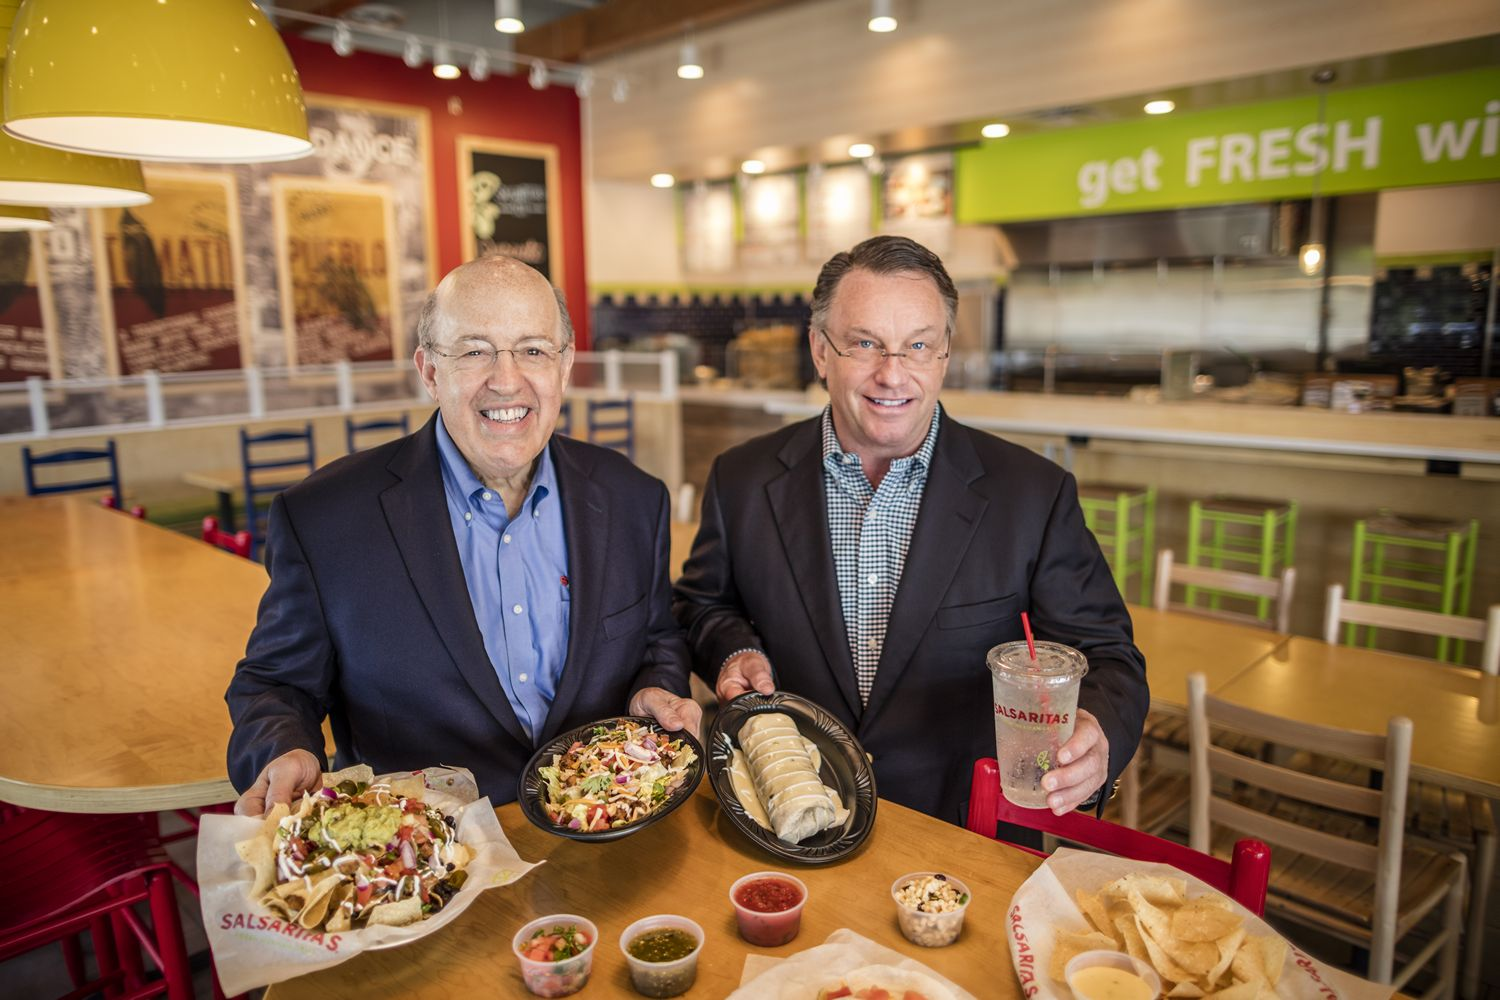 Salsarita's Fresh Mexican Grill Introduces New Prototype and Strong Growth